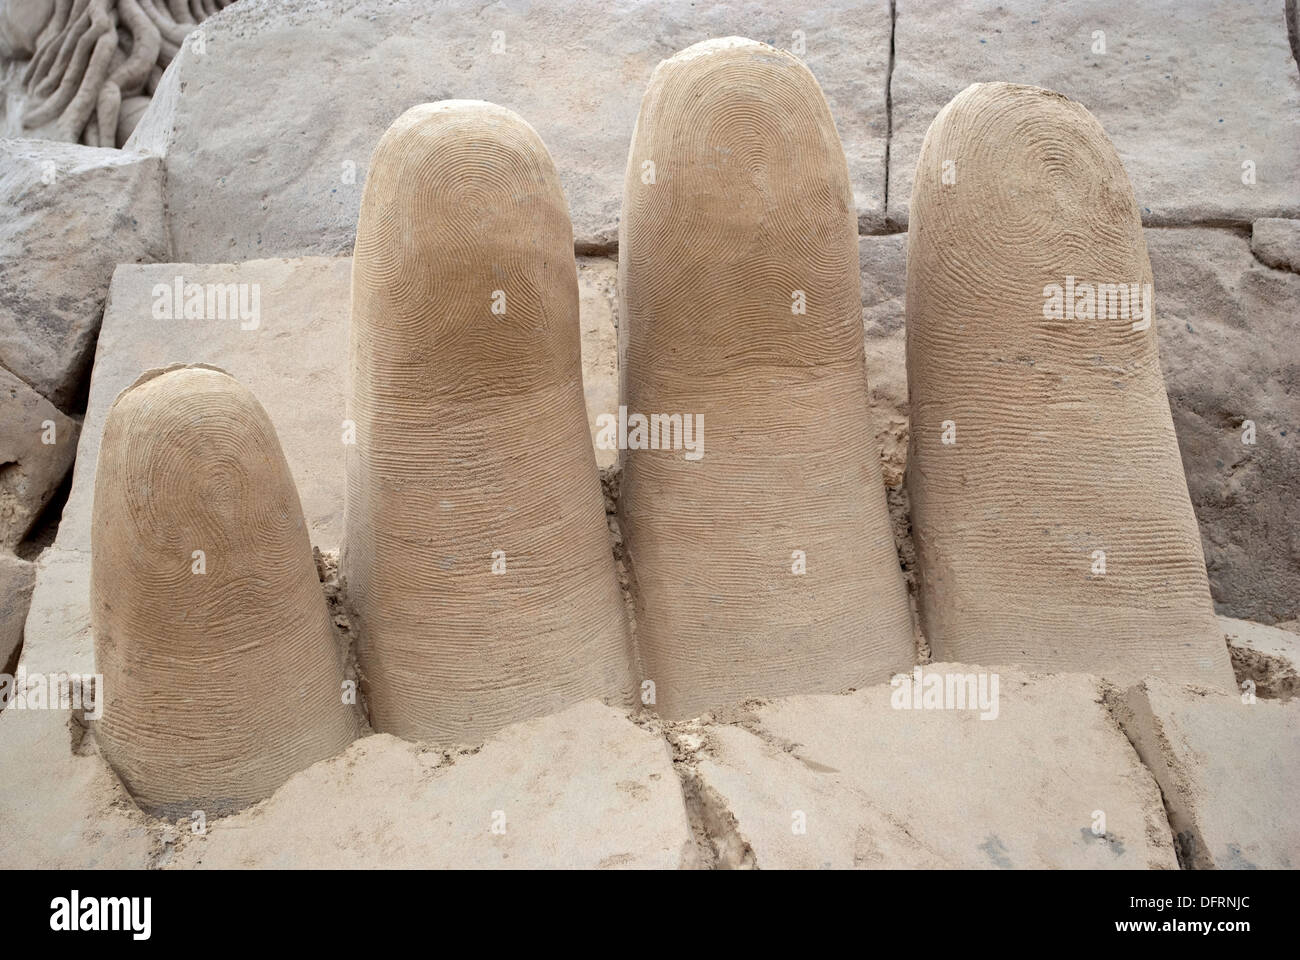 Fingers of sand on the city beach. - Stock Image